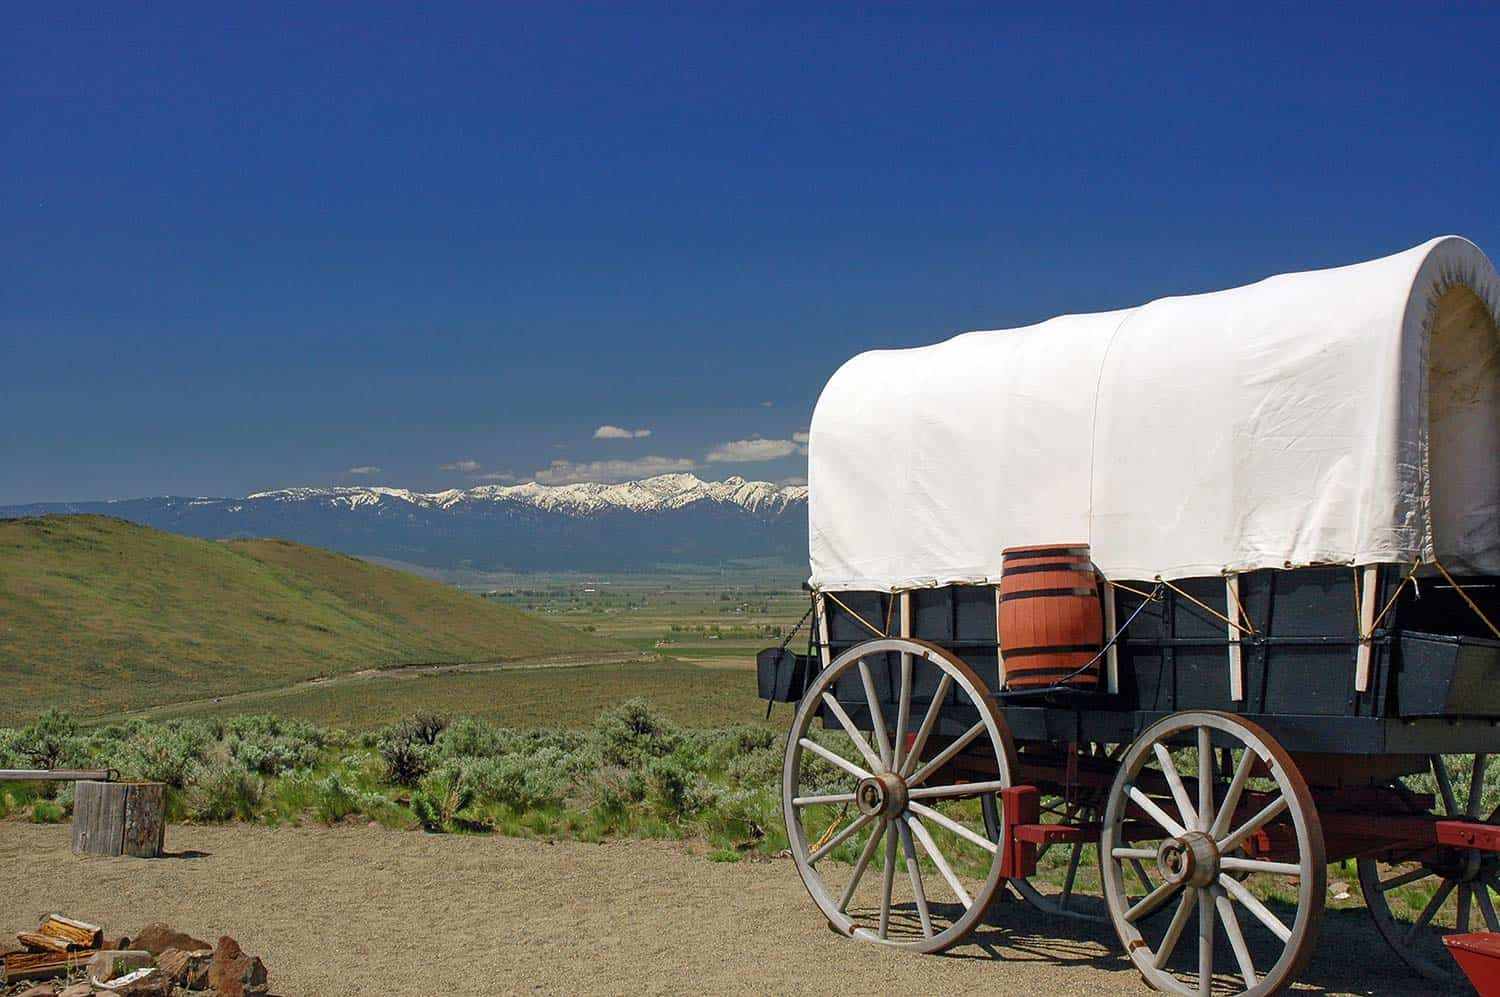 Hike Through History On These Stretches Of The Oregon Trail